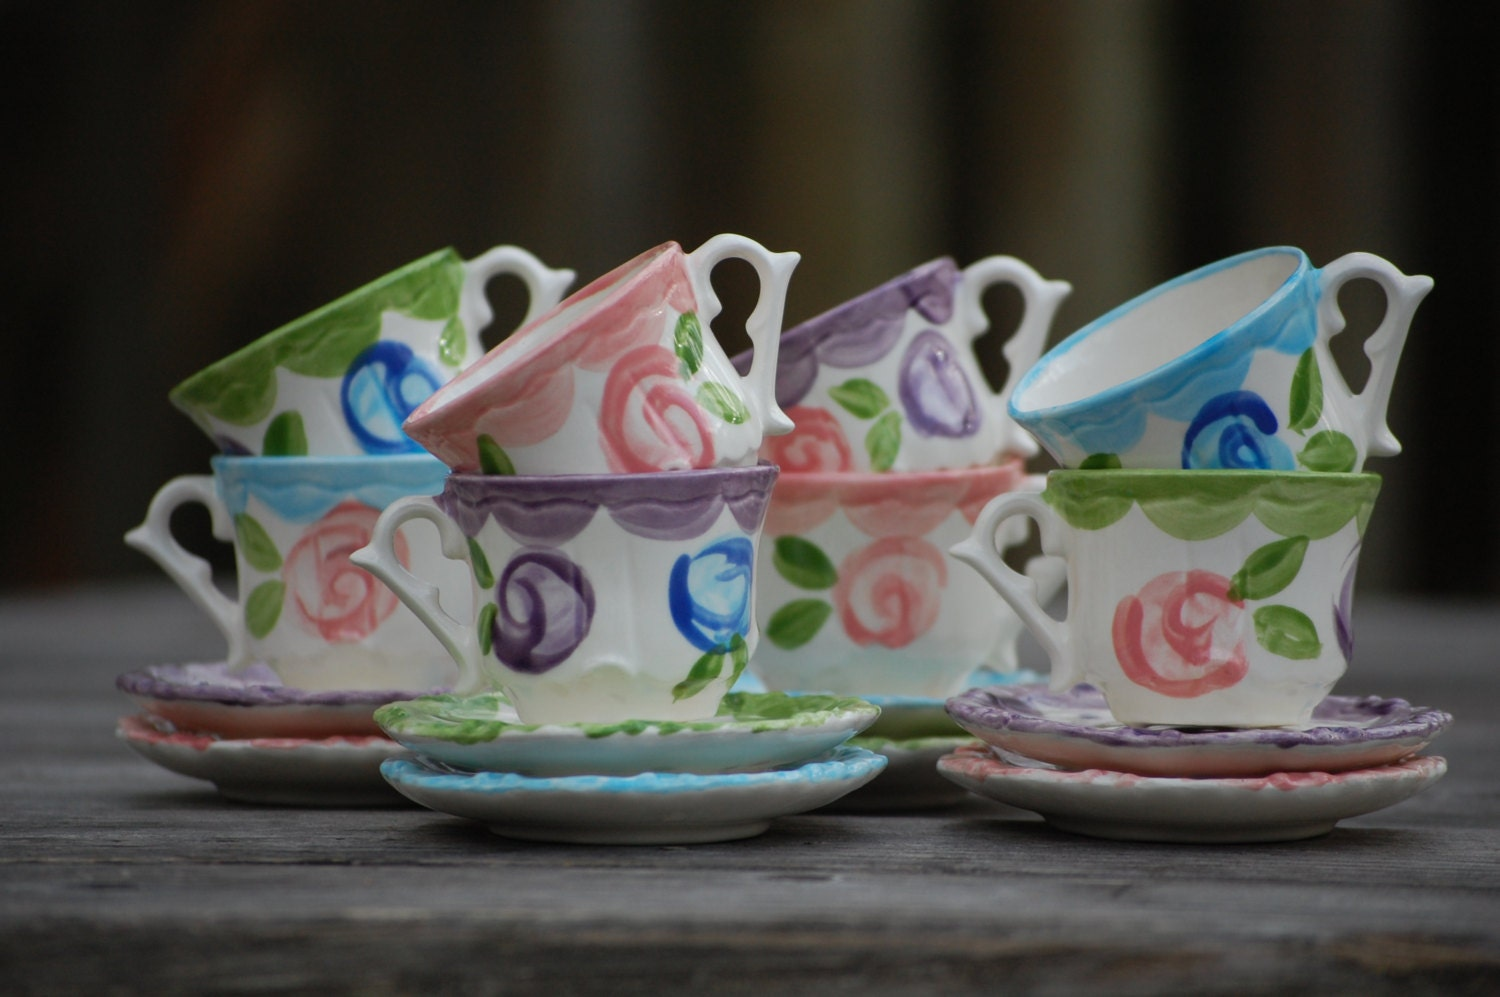 Tea party favors personalized tea cups by hollyslay on etsy for Teacup party favors